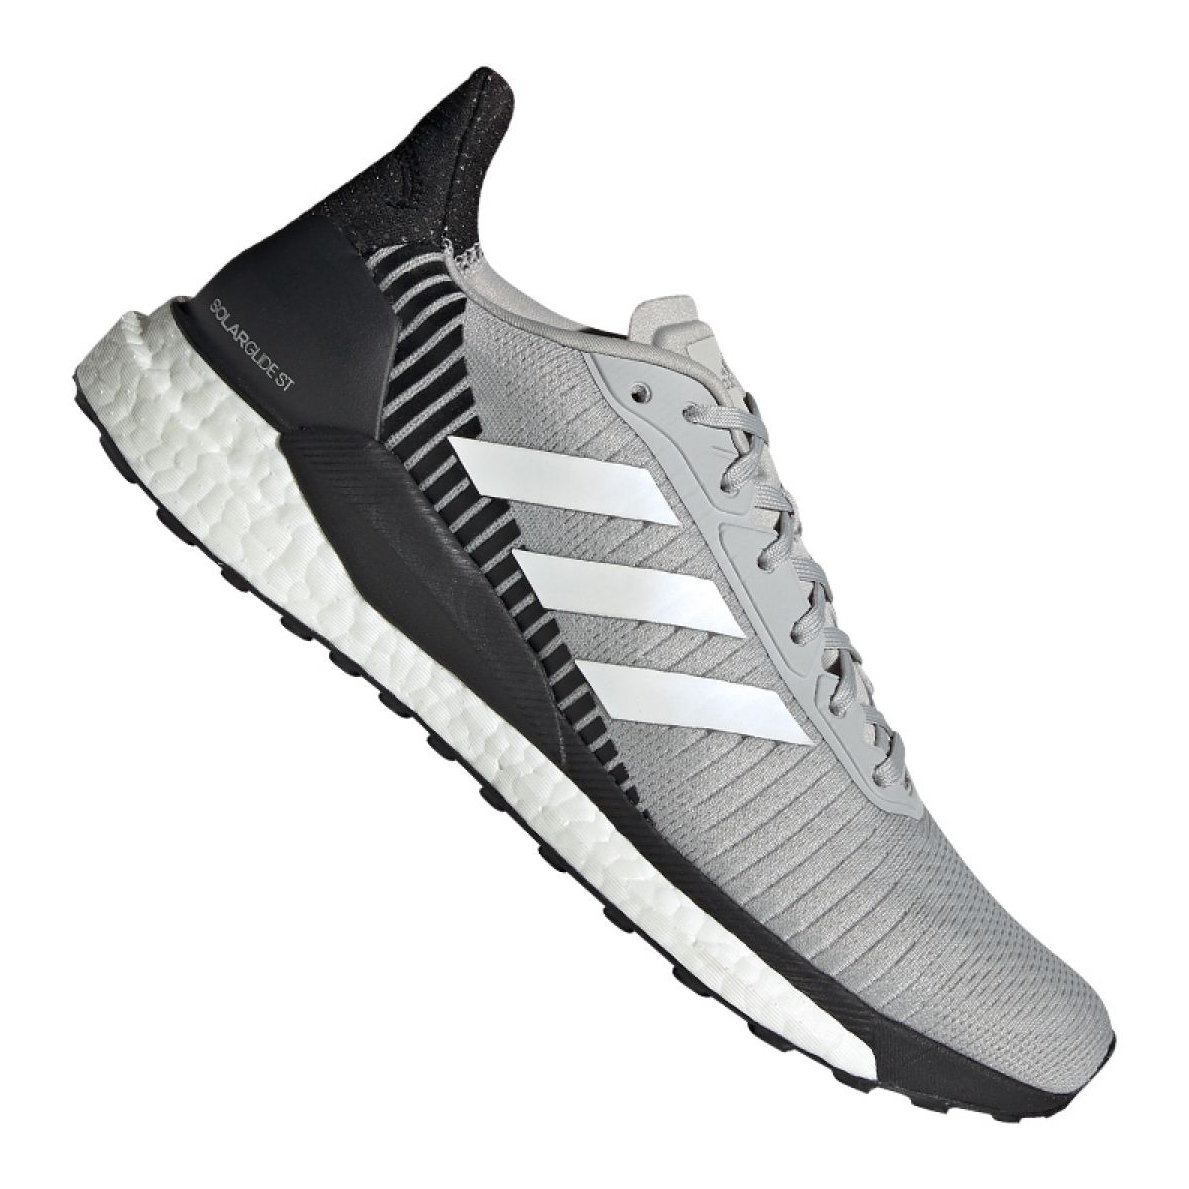 Adidas SolarBOOST, Solar Glide and Solar Glide ST Shoe